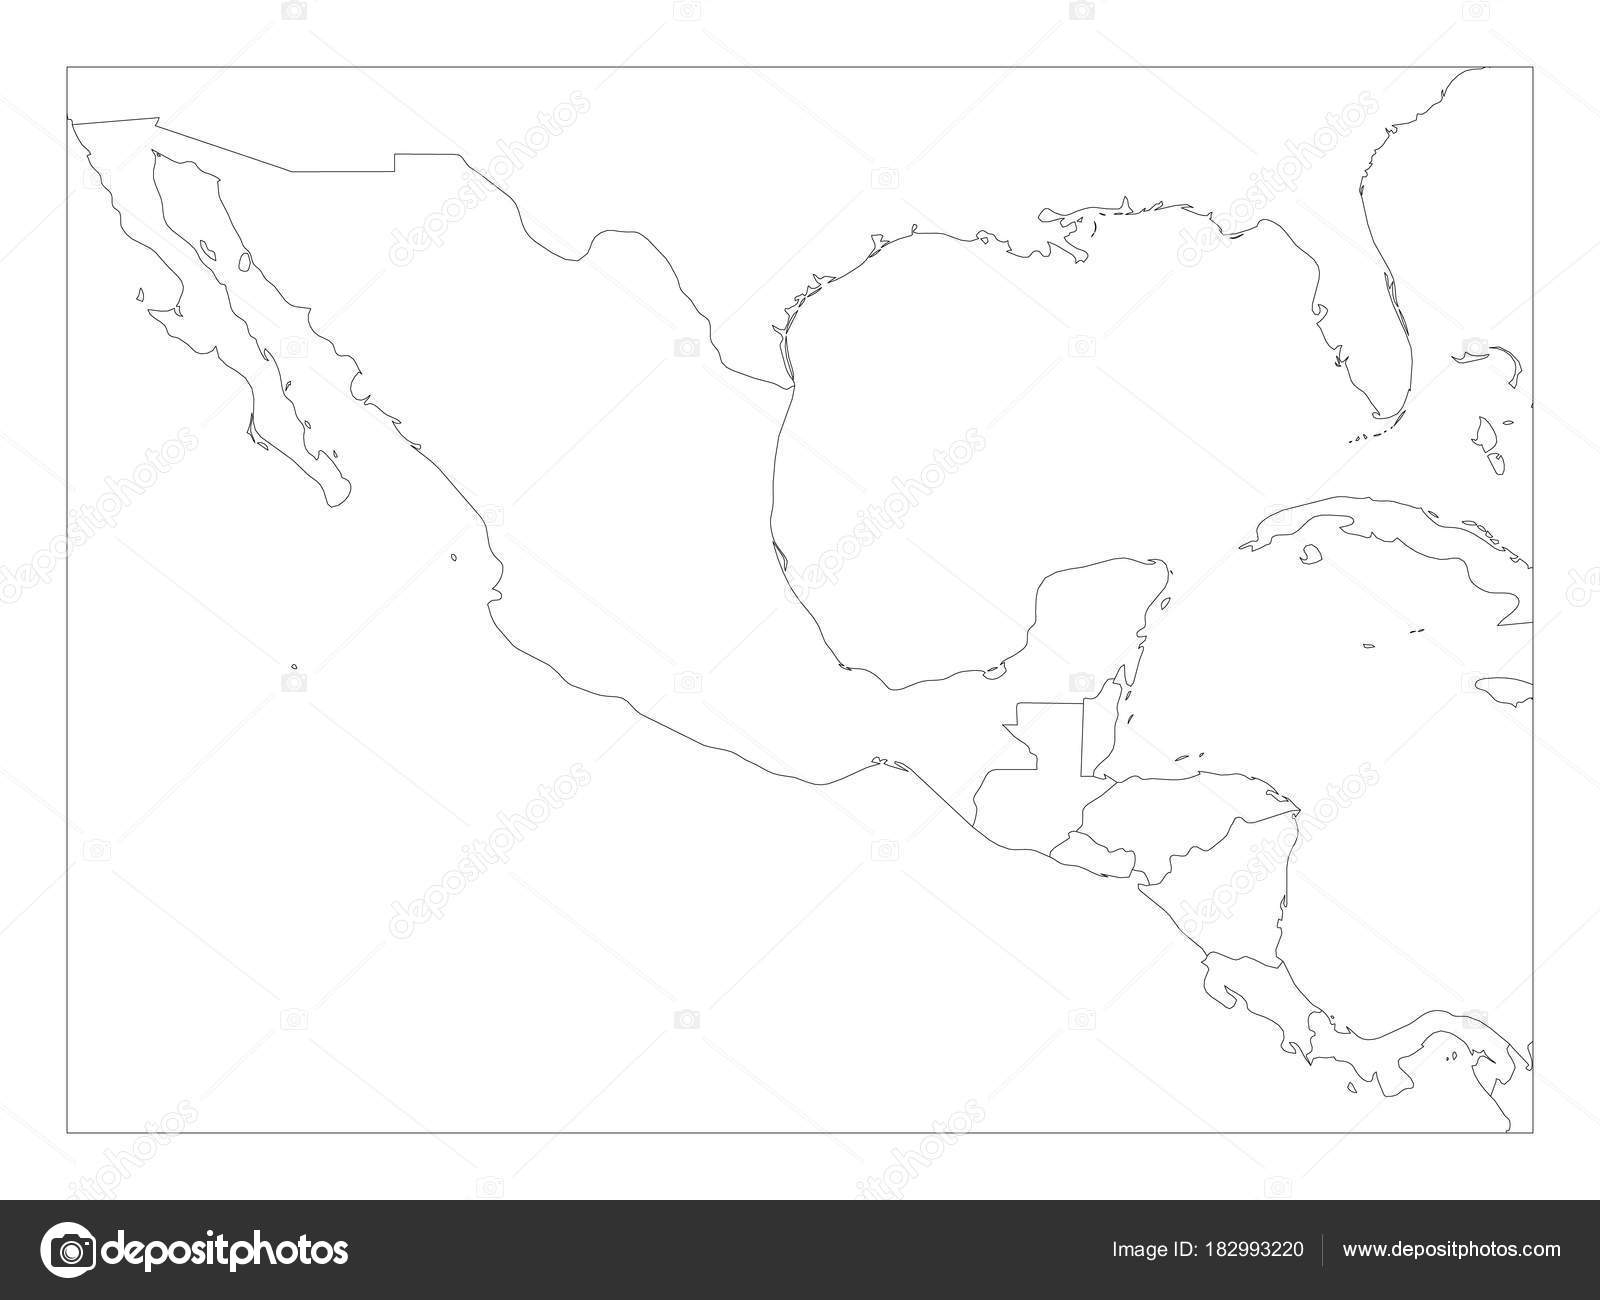 Blank Political Map Of Central America And Mexico. Simple Thin Black  Outline Vector Illustration U2014